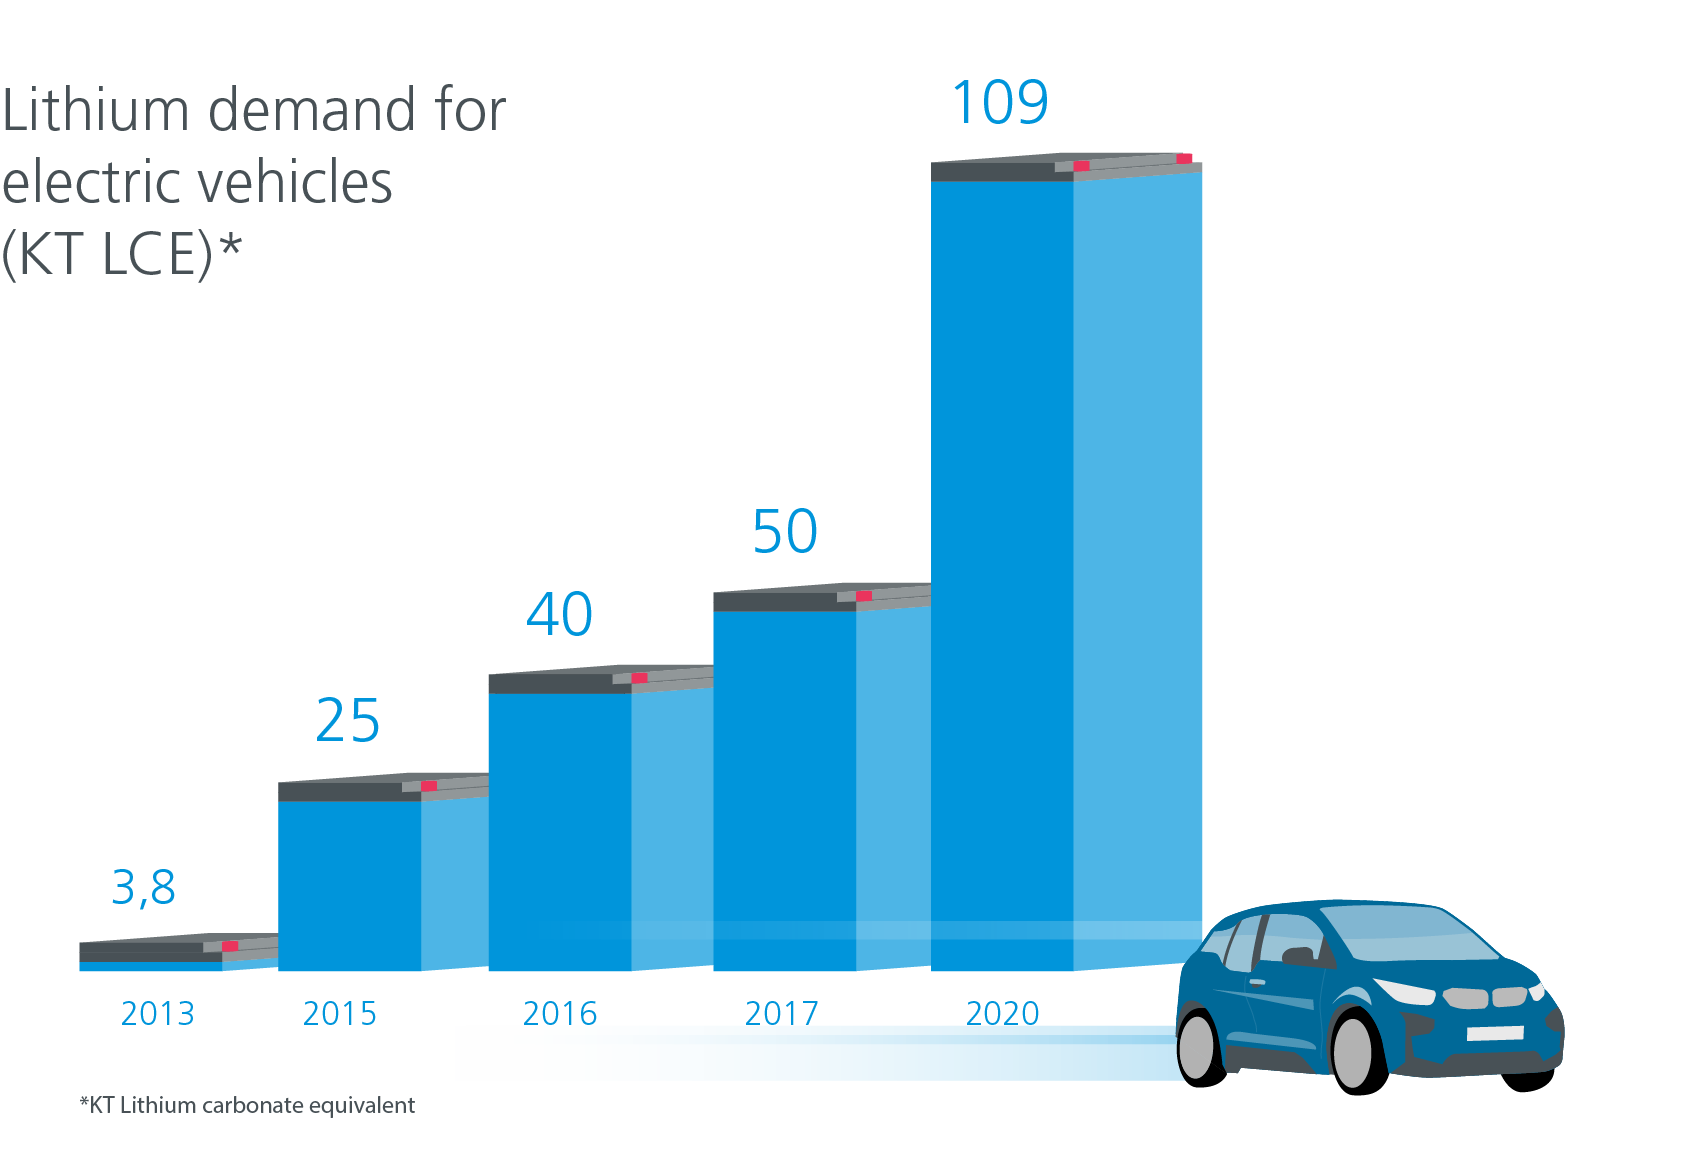 Lithium demand for e-vehicles